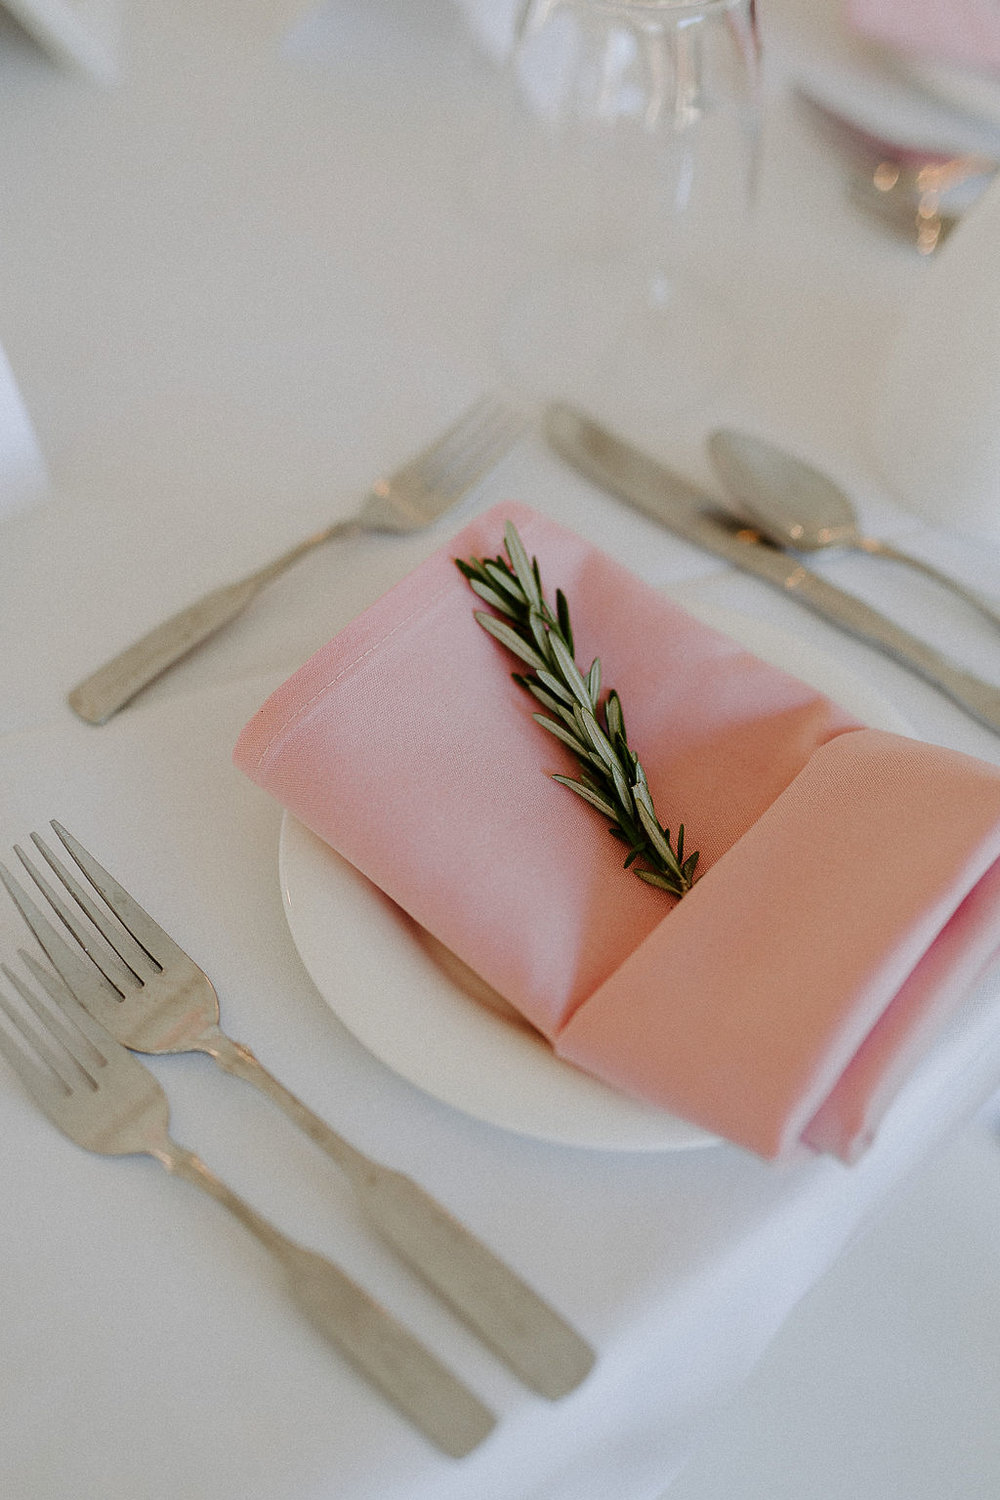 Herb Sprig at Place Setting - Garden Inspired Weddings in Winnipeg